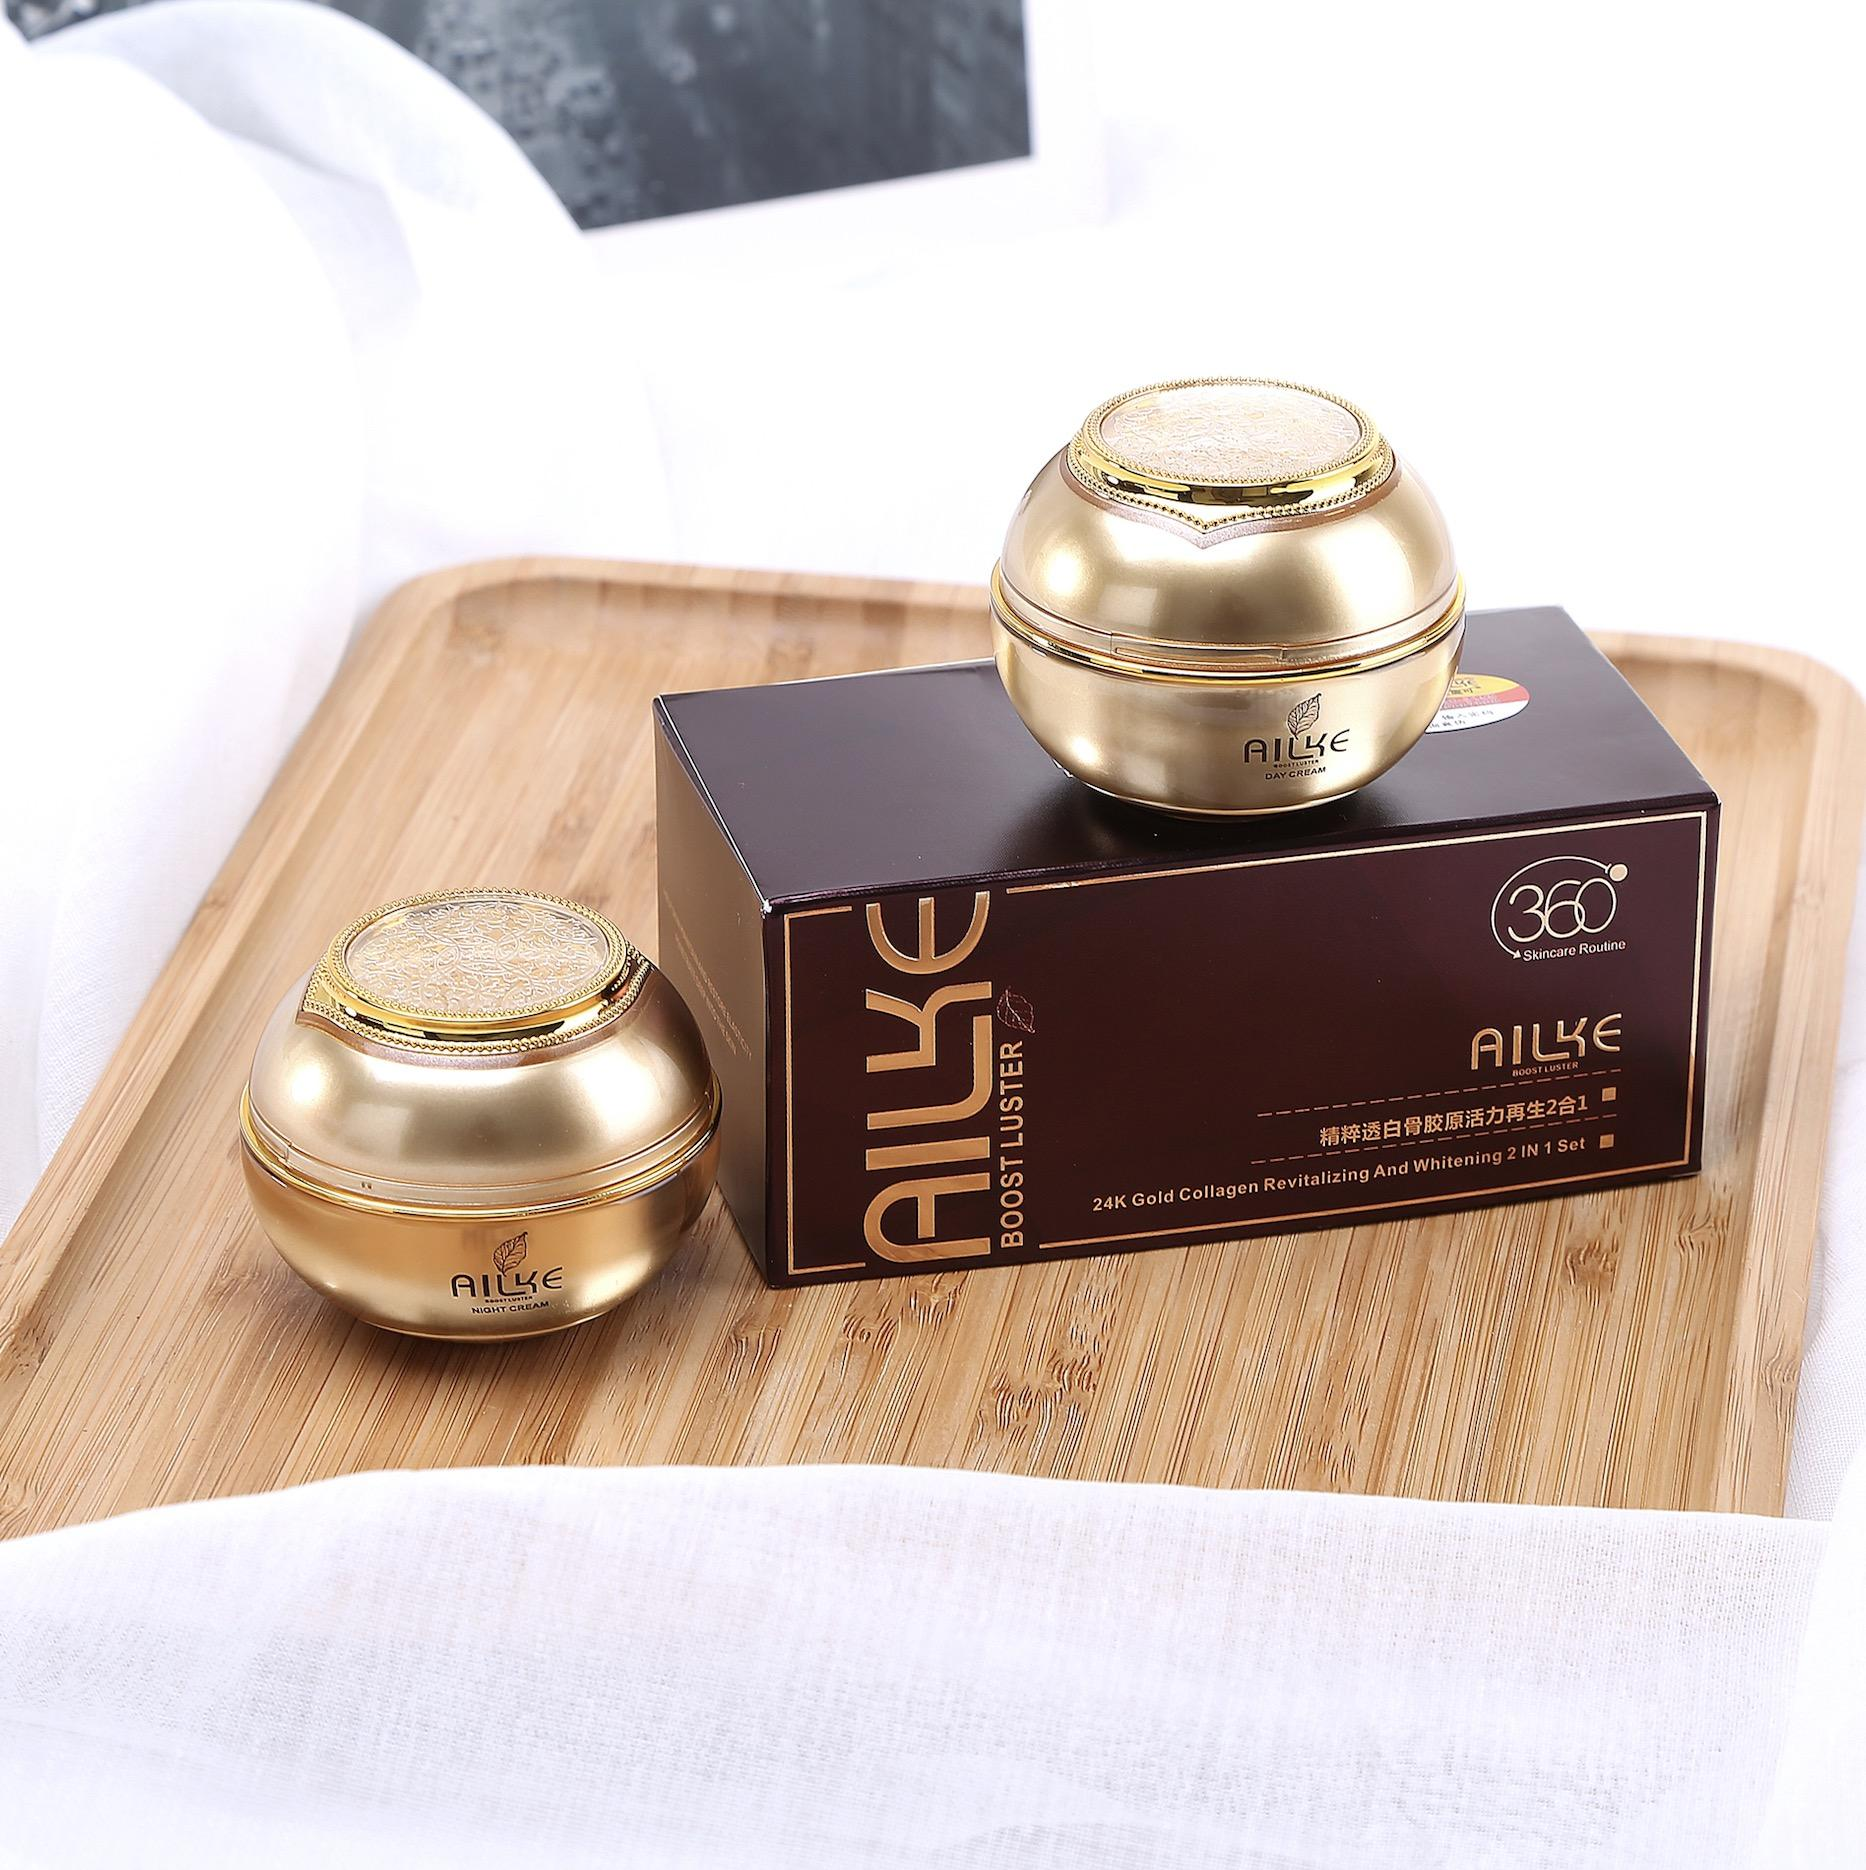 AILKE Cosmetics Brands Face Cream Set 2 In 1 Cleansing Repair Whitening Day And Night Cream USA